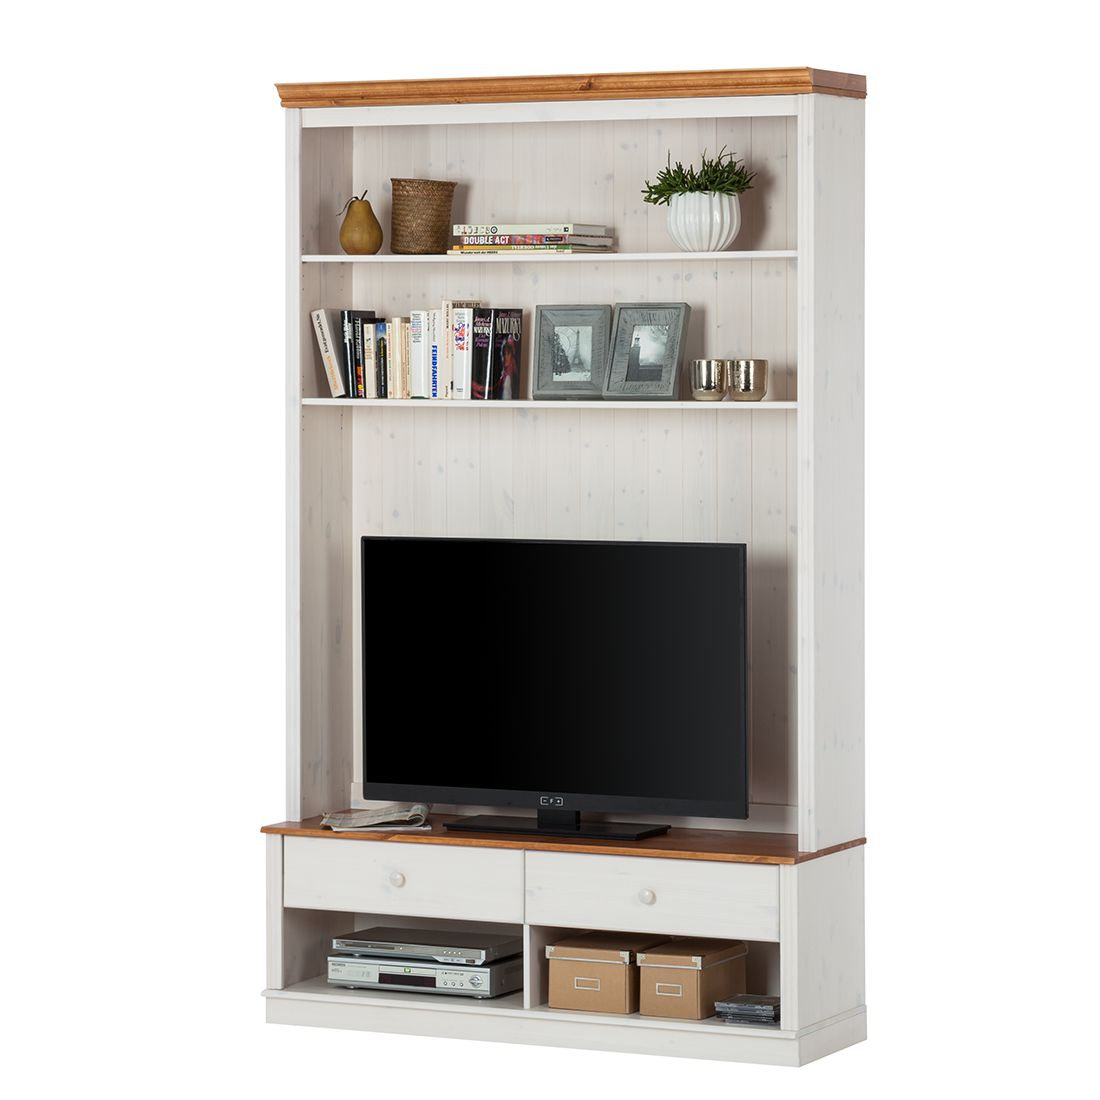 tv 140cm maison belfort preisvergleiche. Black Bedroom Furniture Sets. Home Design Ideas